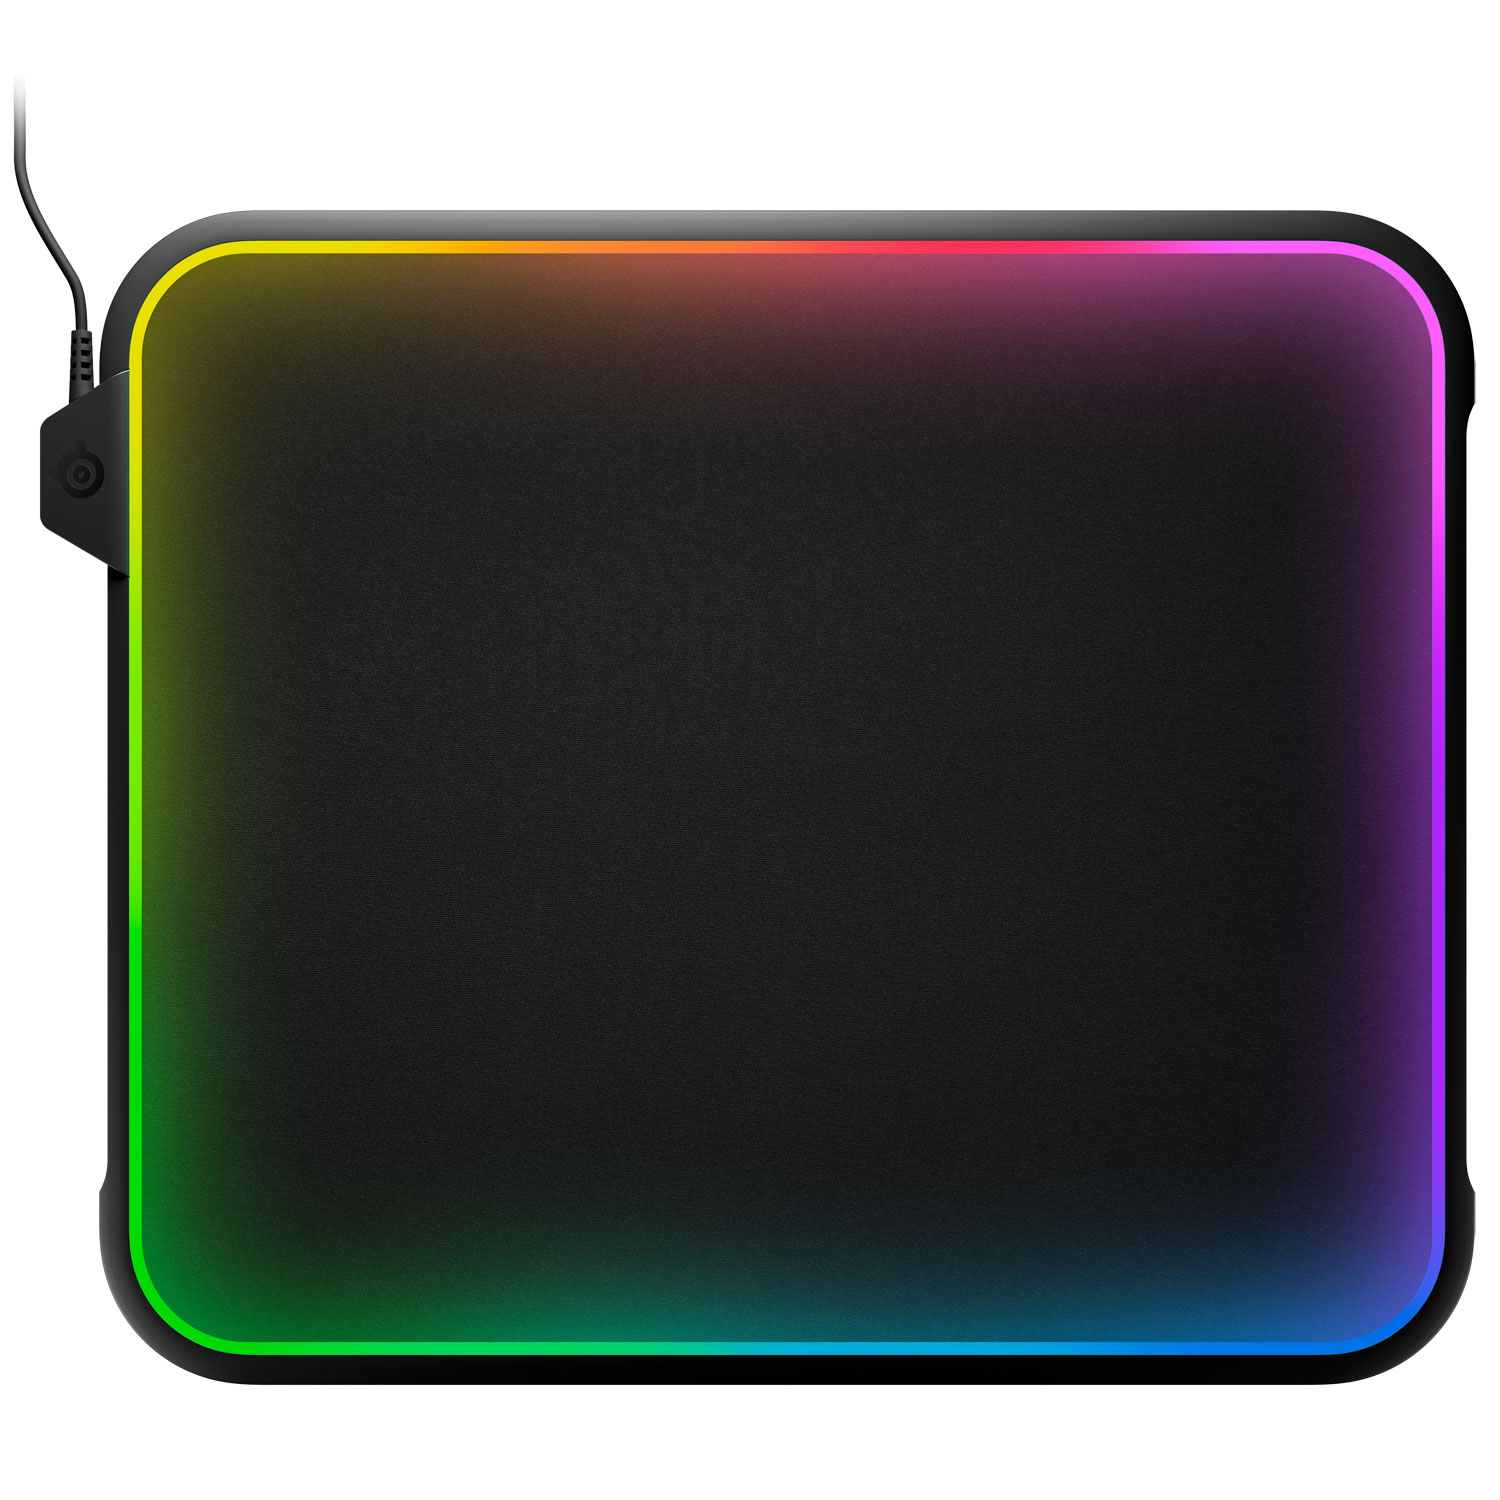 Steelseries qck prism tapis de souris steelseries sur - Steelseries tapis de souris ...